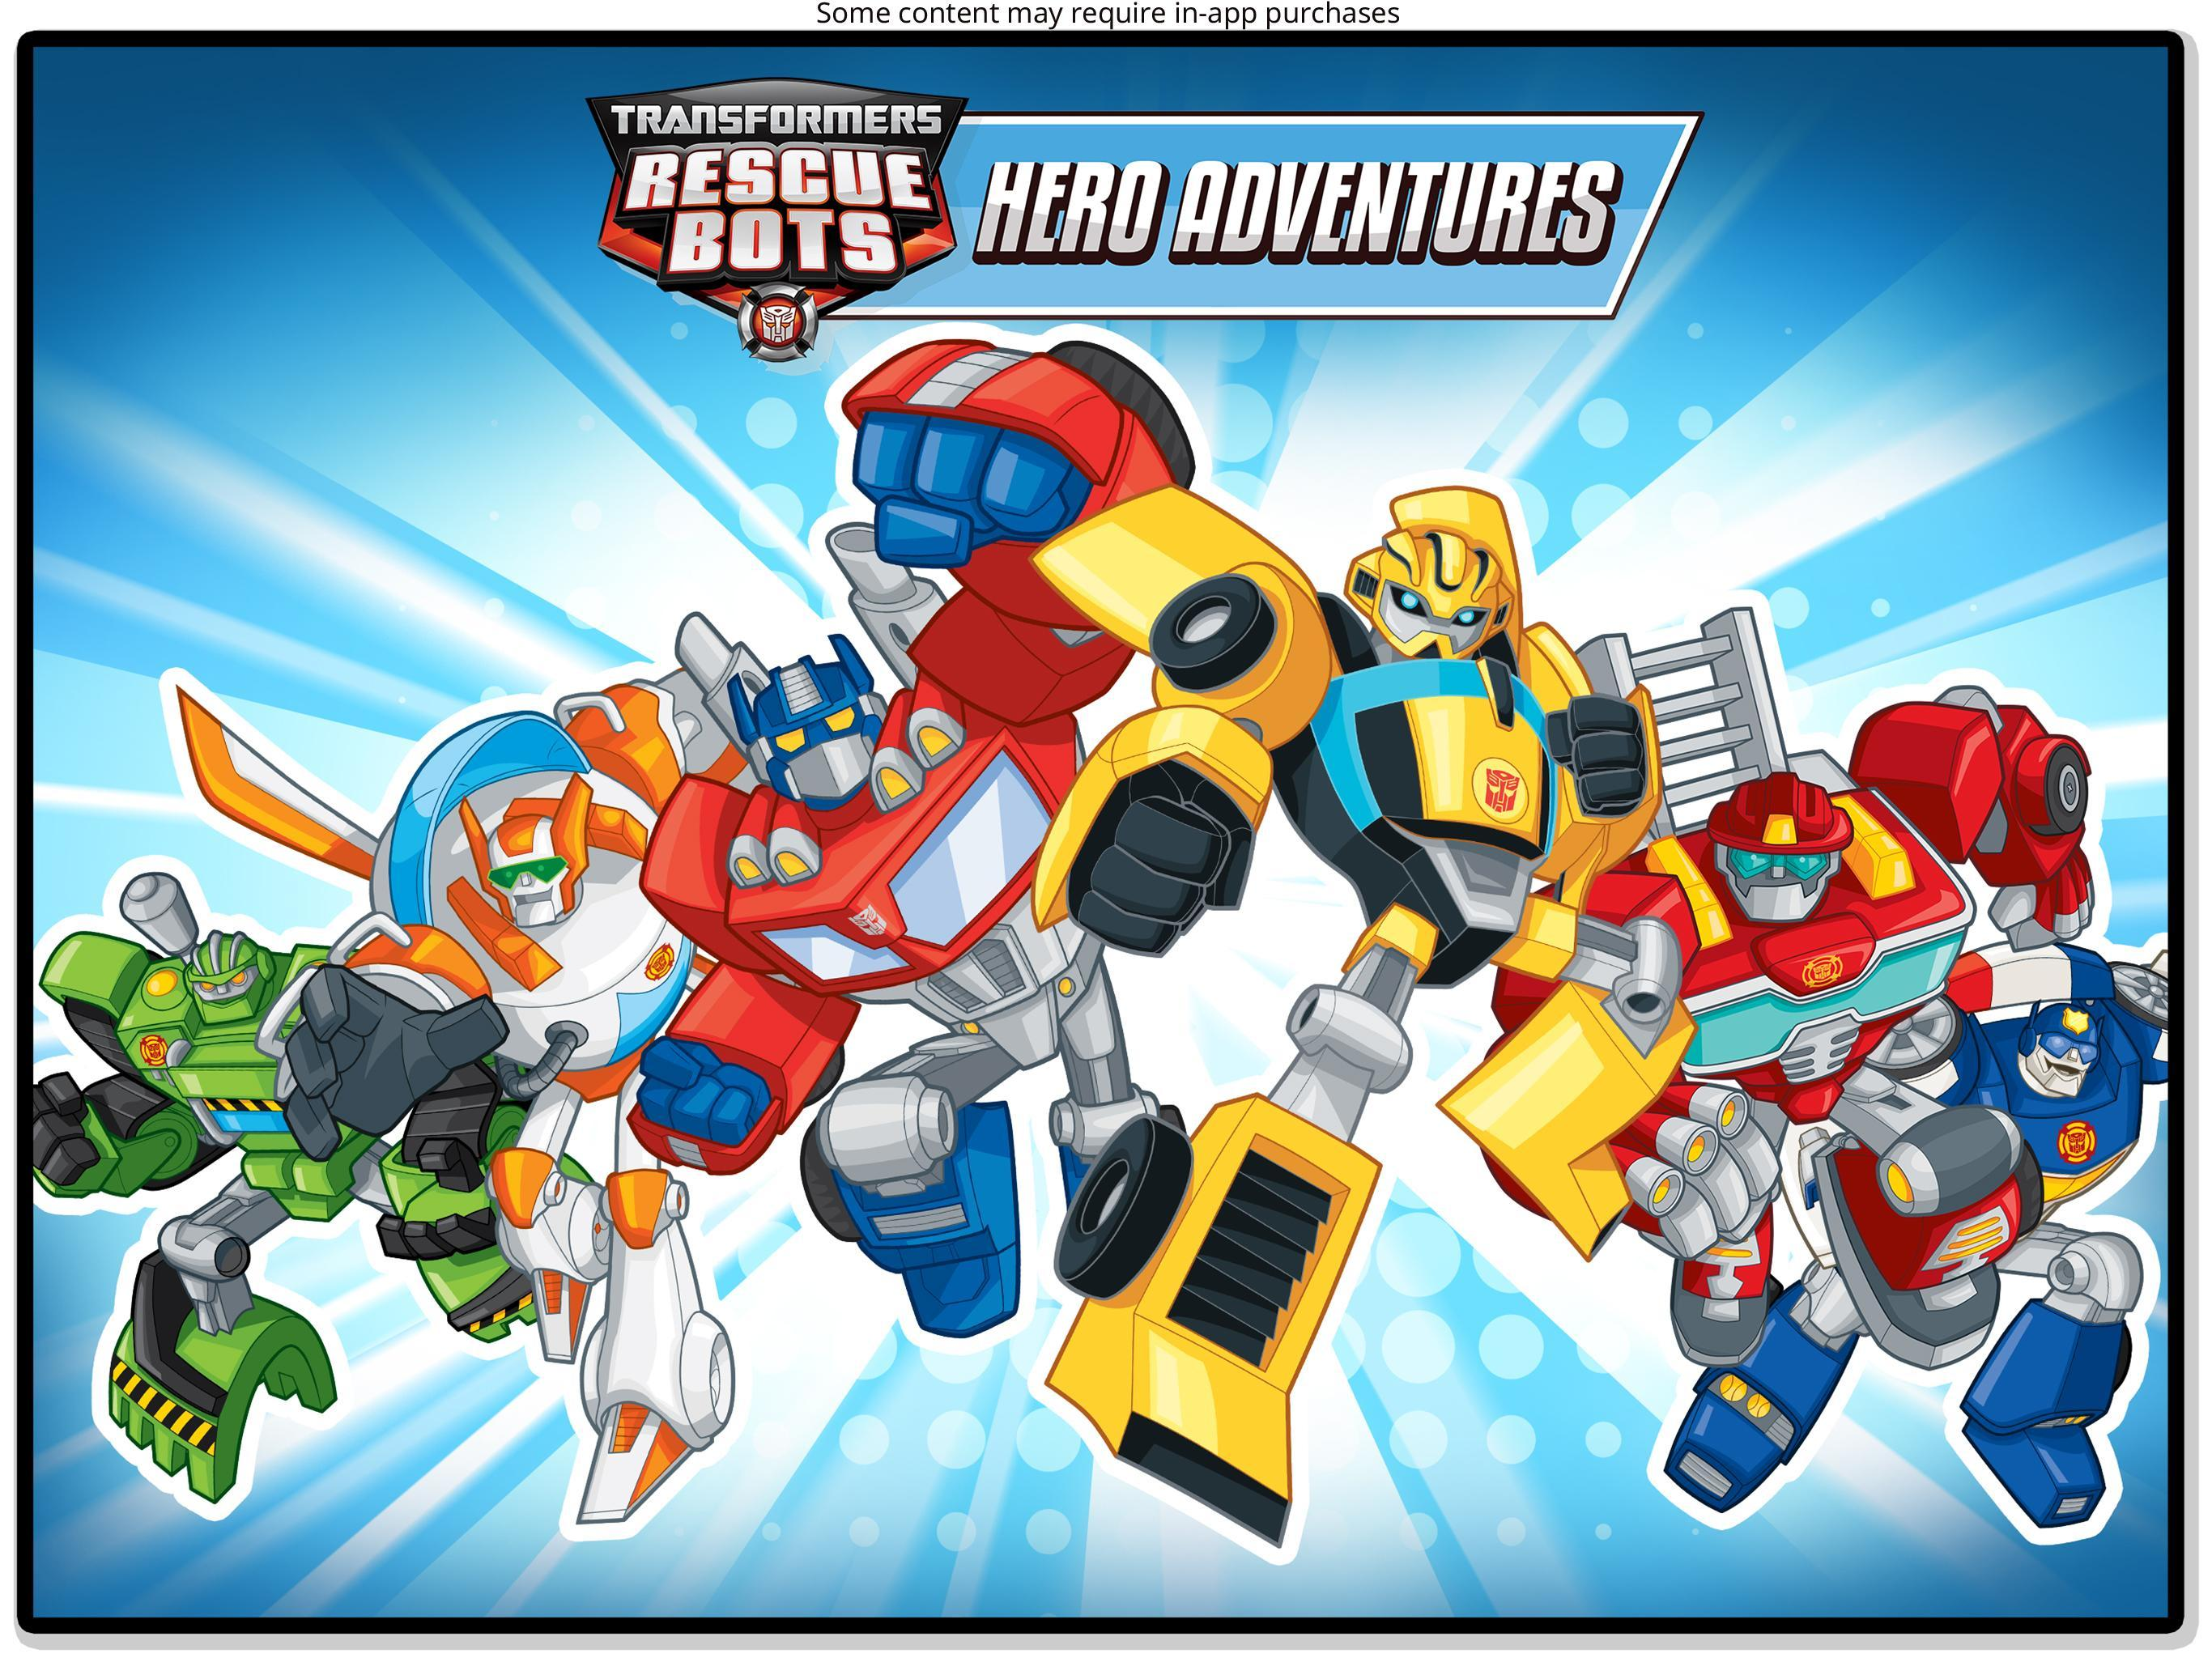 Transformers Rescue Bots: Hero Adventures 2.1 Screenshot 13